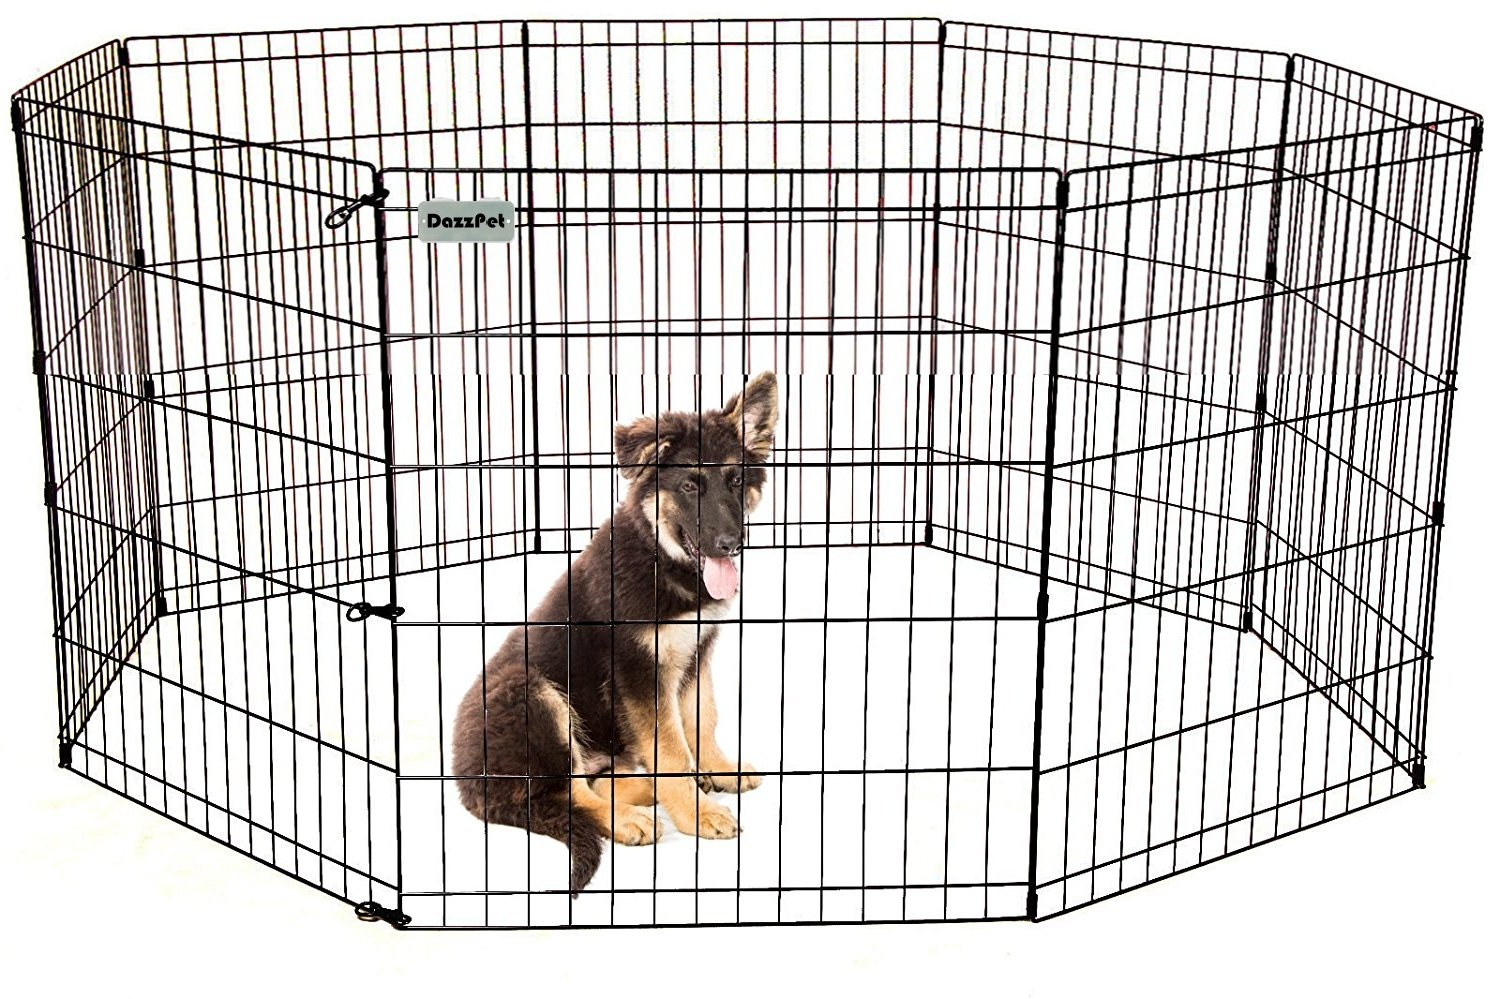 DazzPet Dog Pen Puppy Playpen | 30'' Height Indoor Outdoor Exercise Outside Play Yard | Pet Small Animal Puppies Portable Foldable Fence Enclosures | 8 Panel Metal Wire, Black